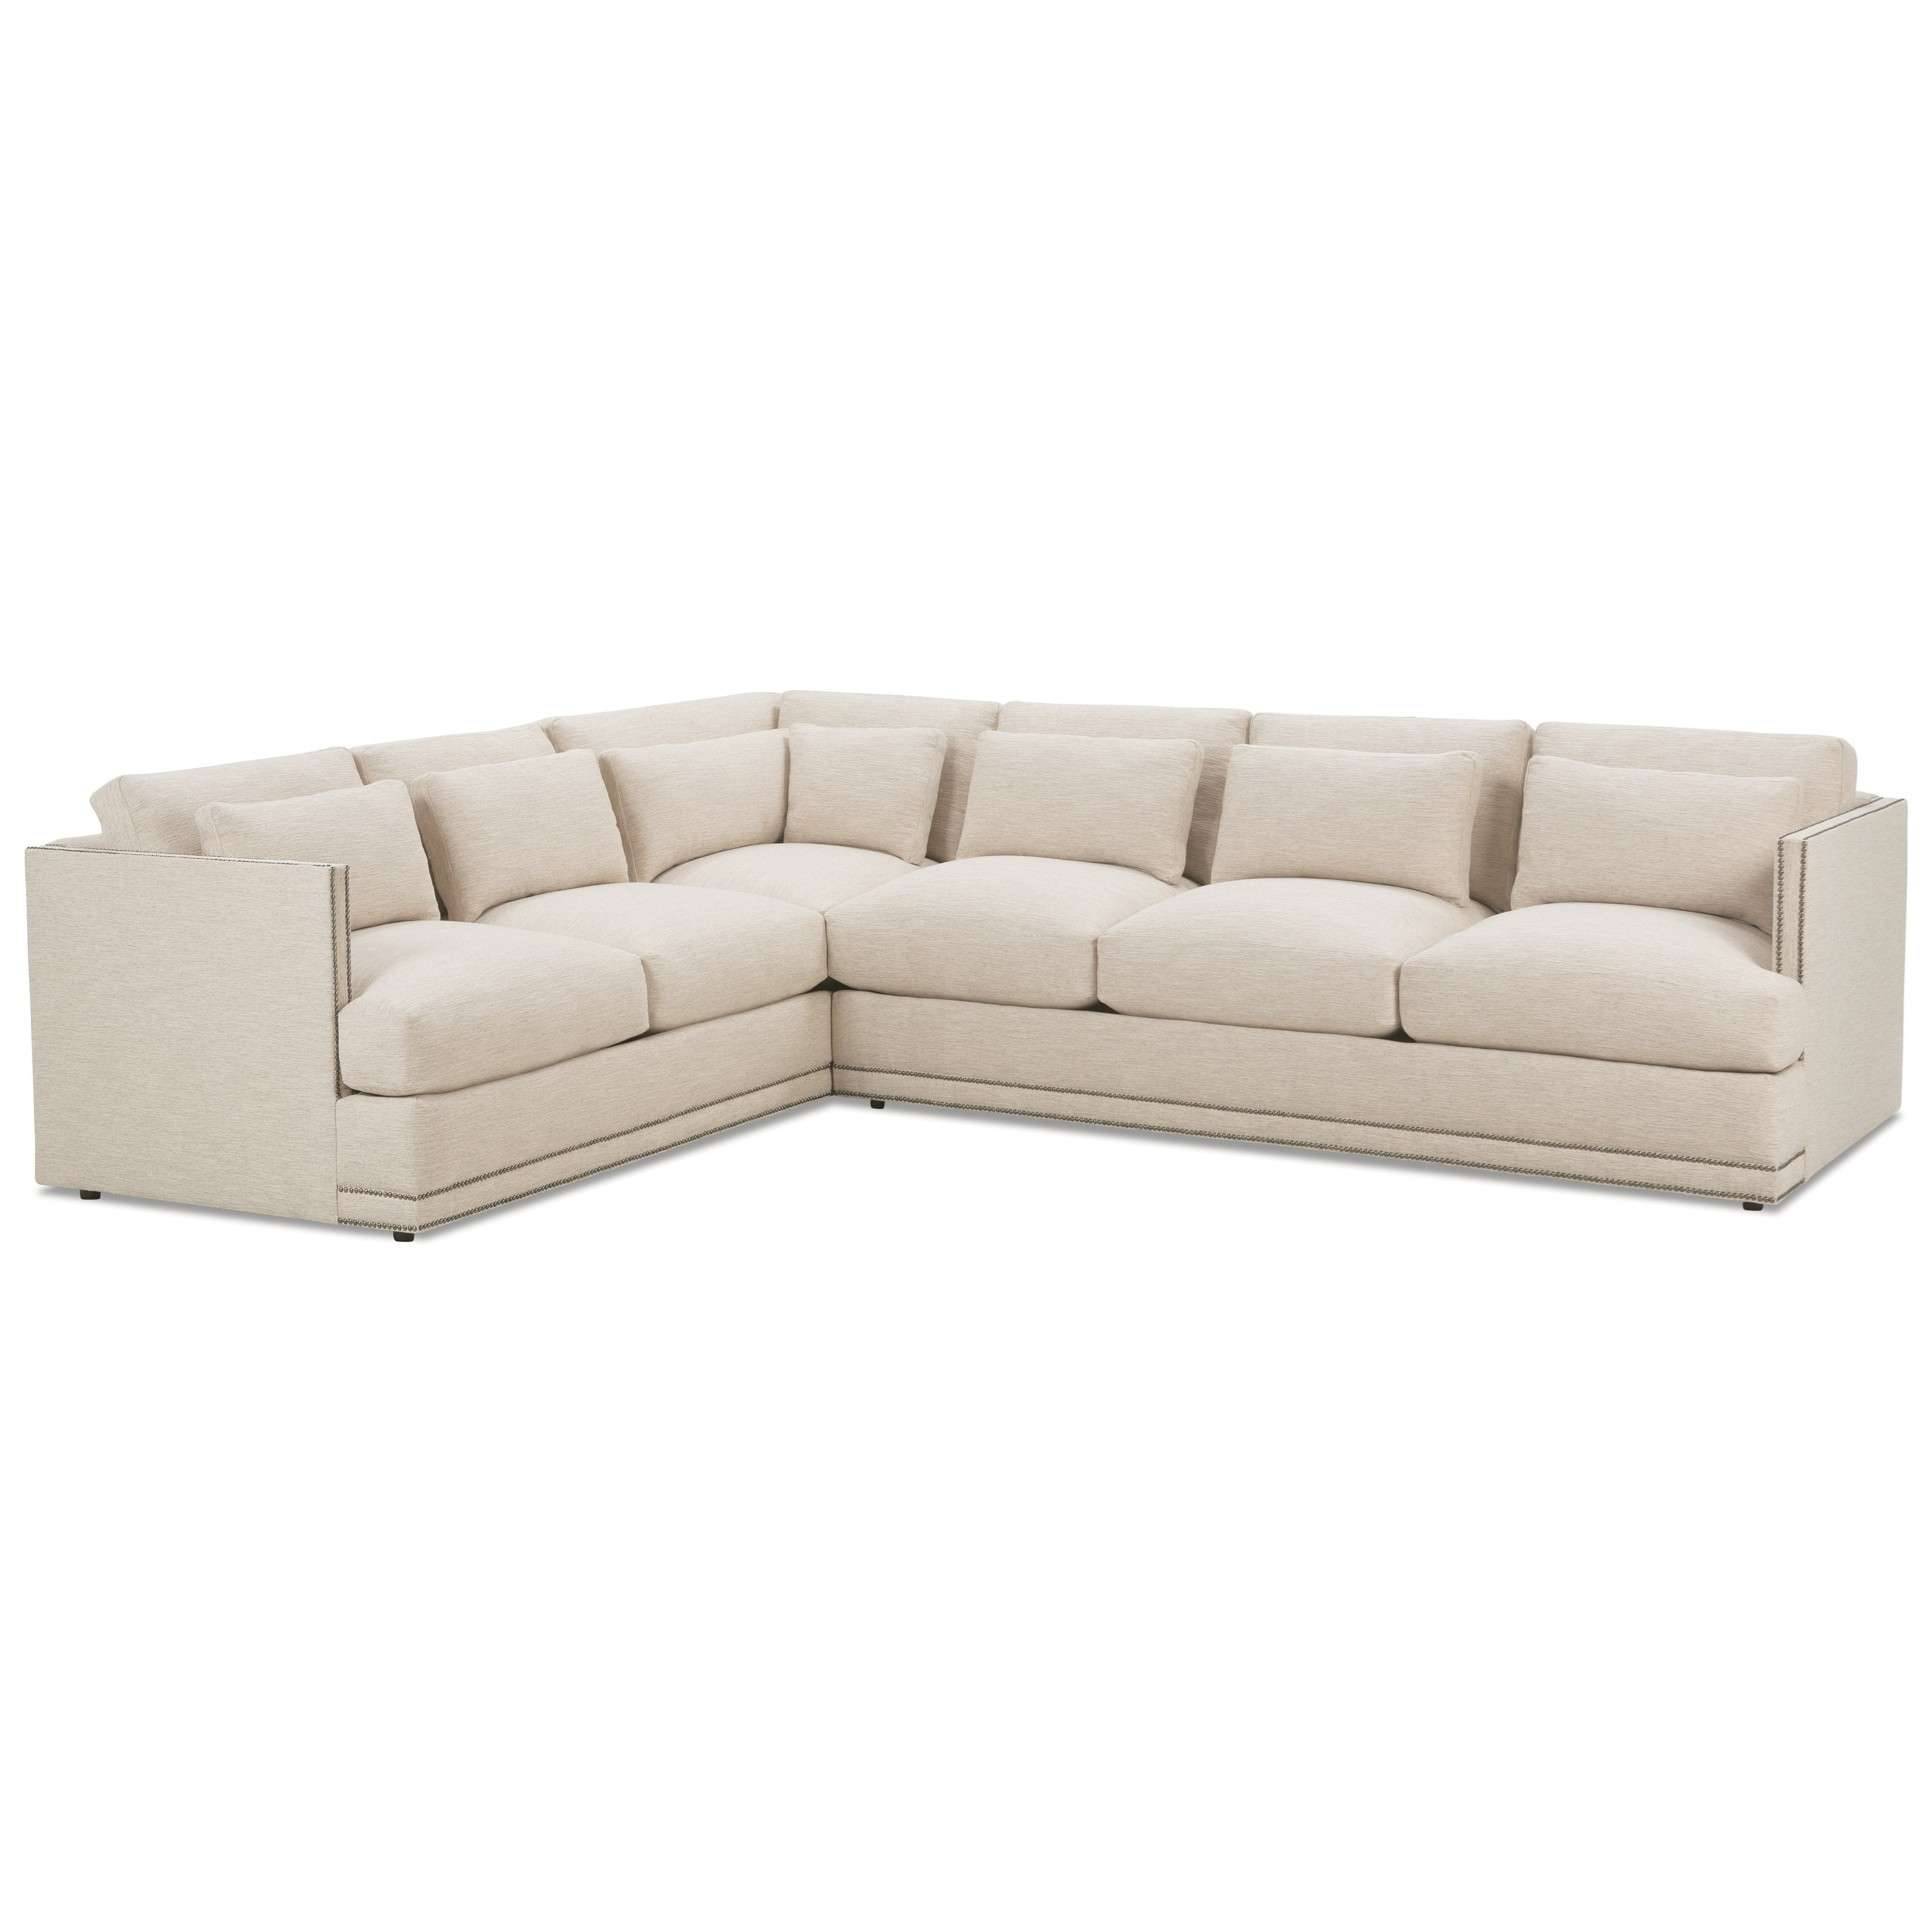 Contemporary sectional sofas Chaise Sectional Rb By Rowe Oscar Contemporary Sectional Sofa Group Value City Nj Furniture Rb By Rowe Oscar Contemporary Sectional Sofa Group Belfort